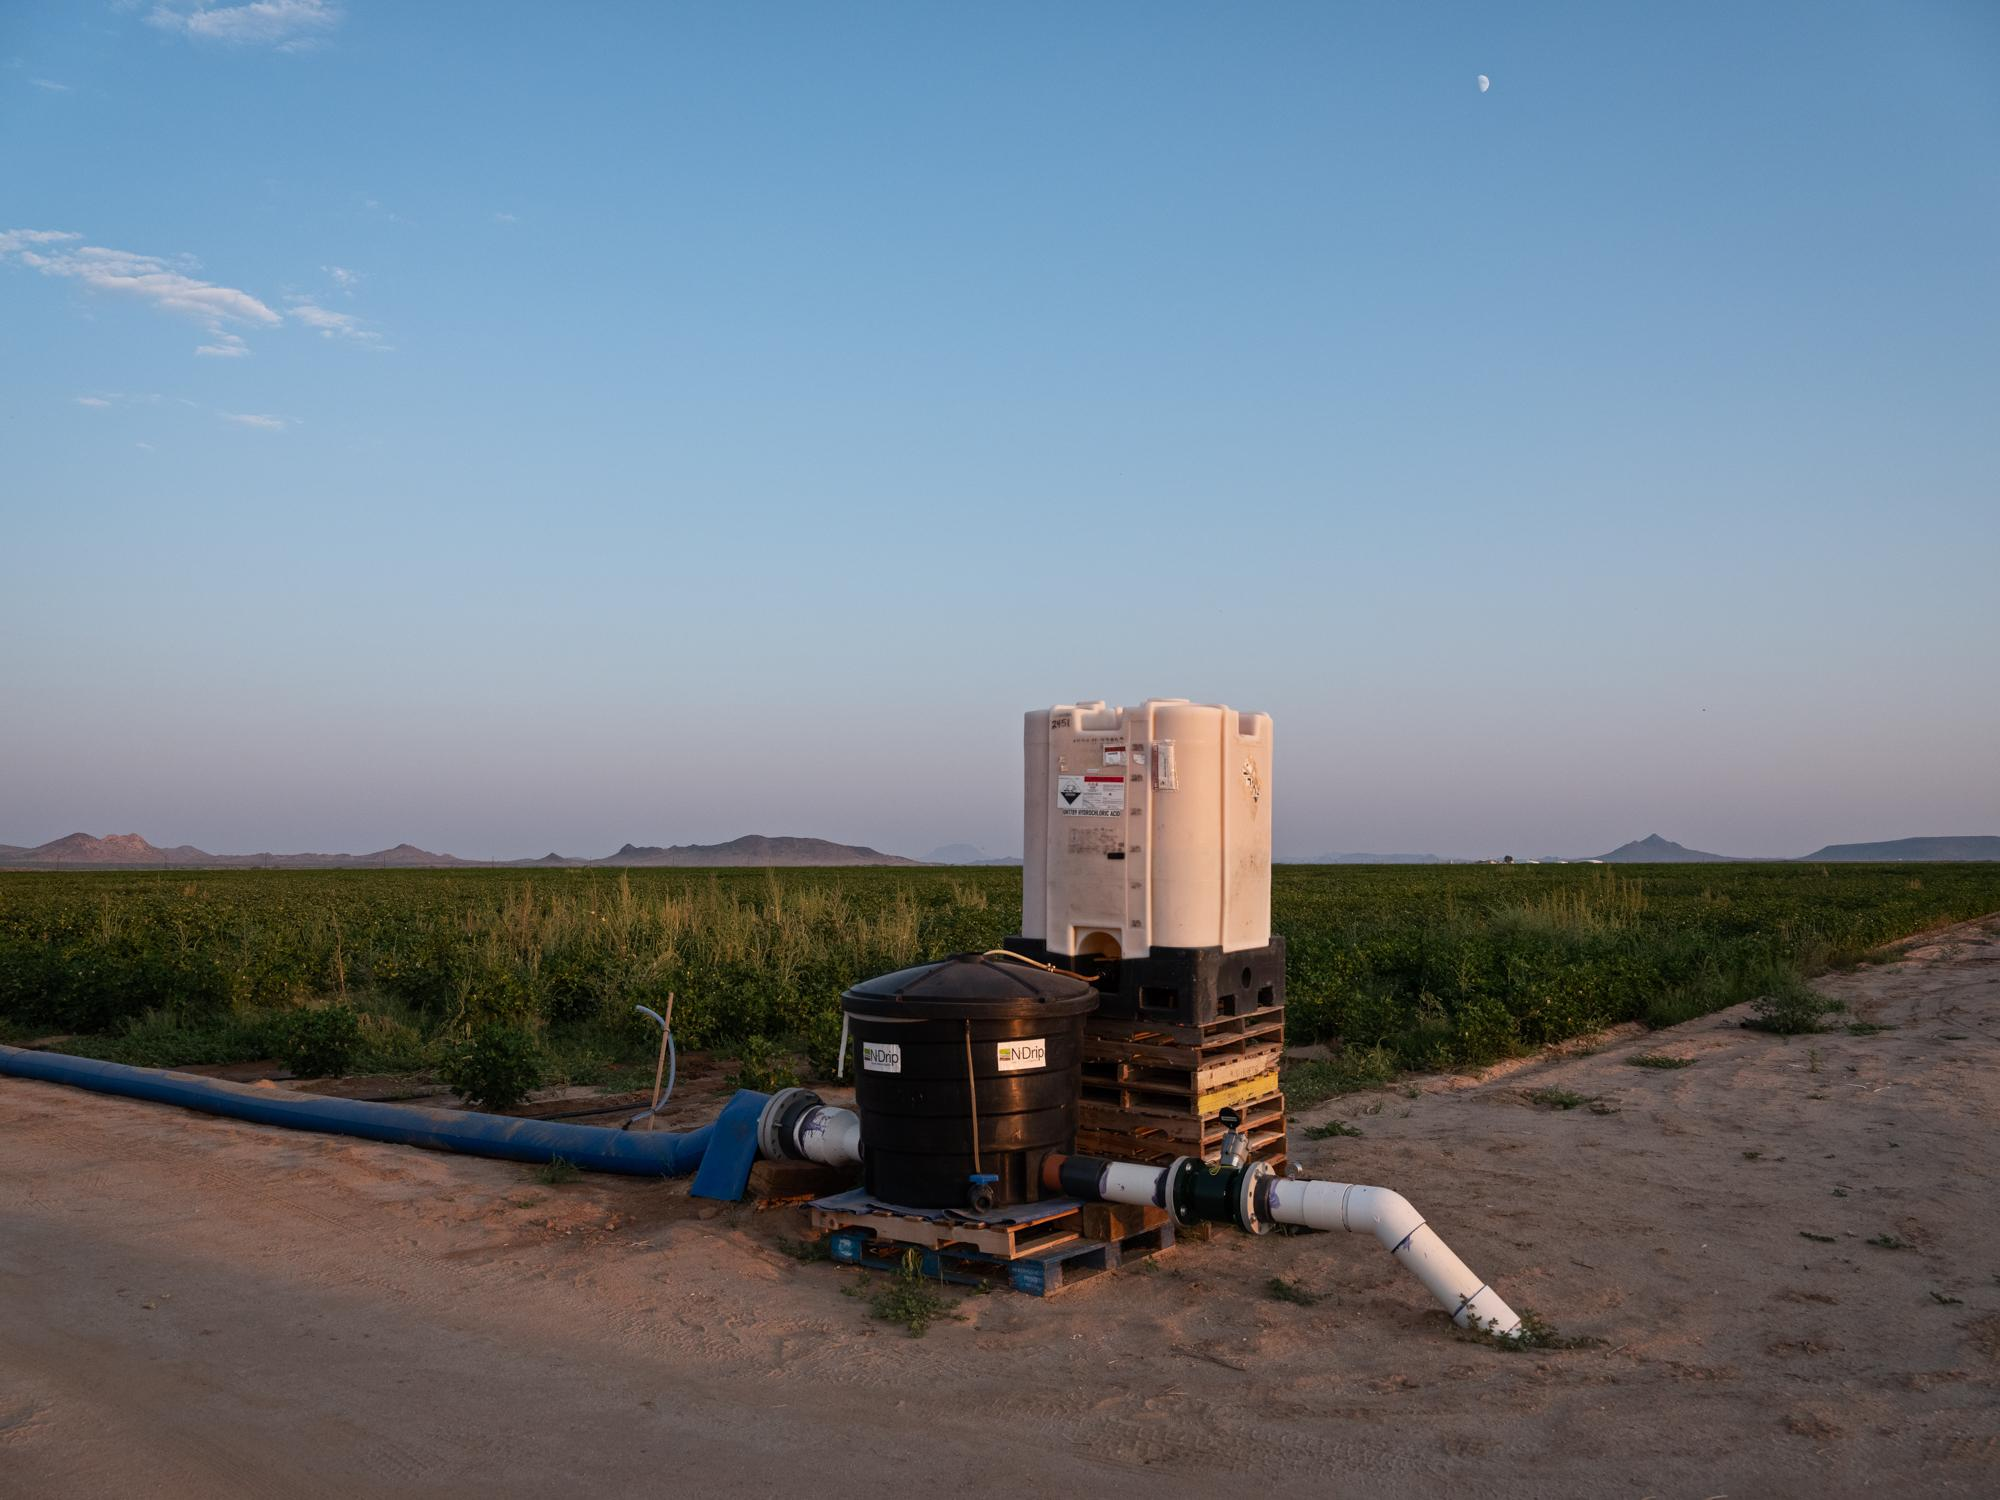 An N-Drip system feeds water into a cotton field.